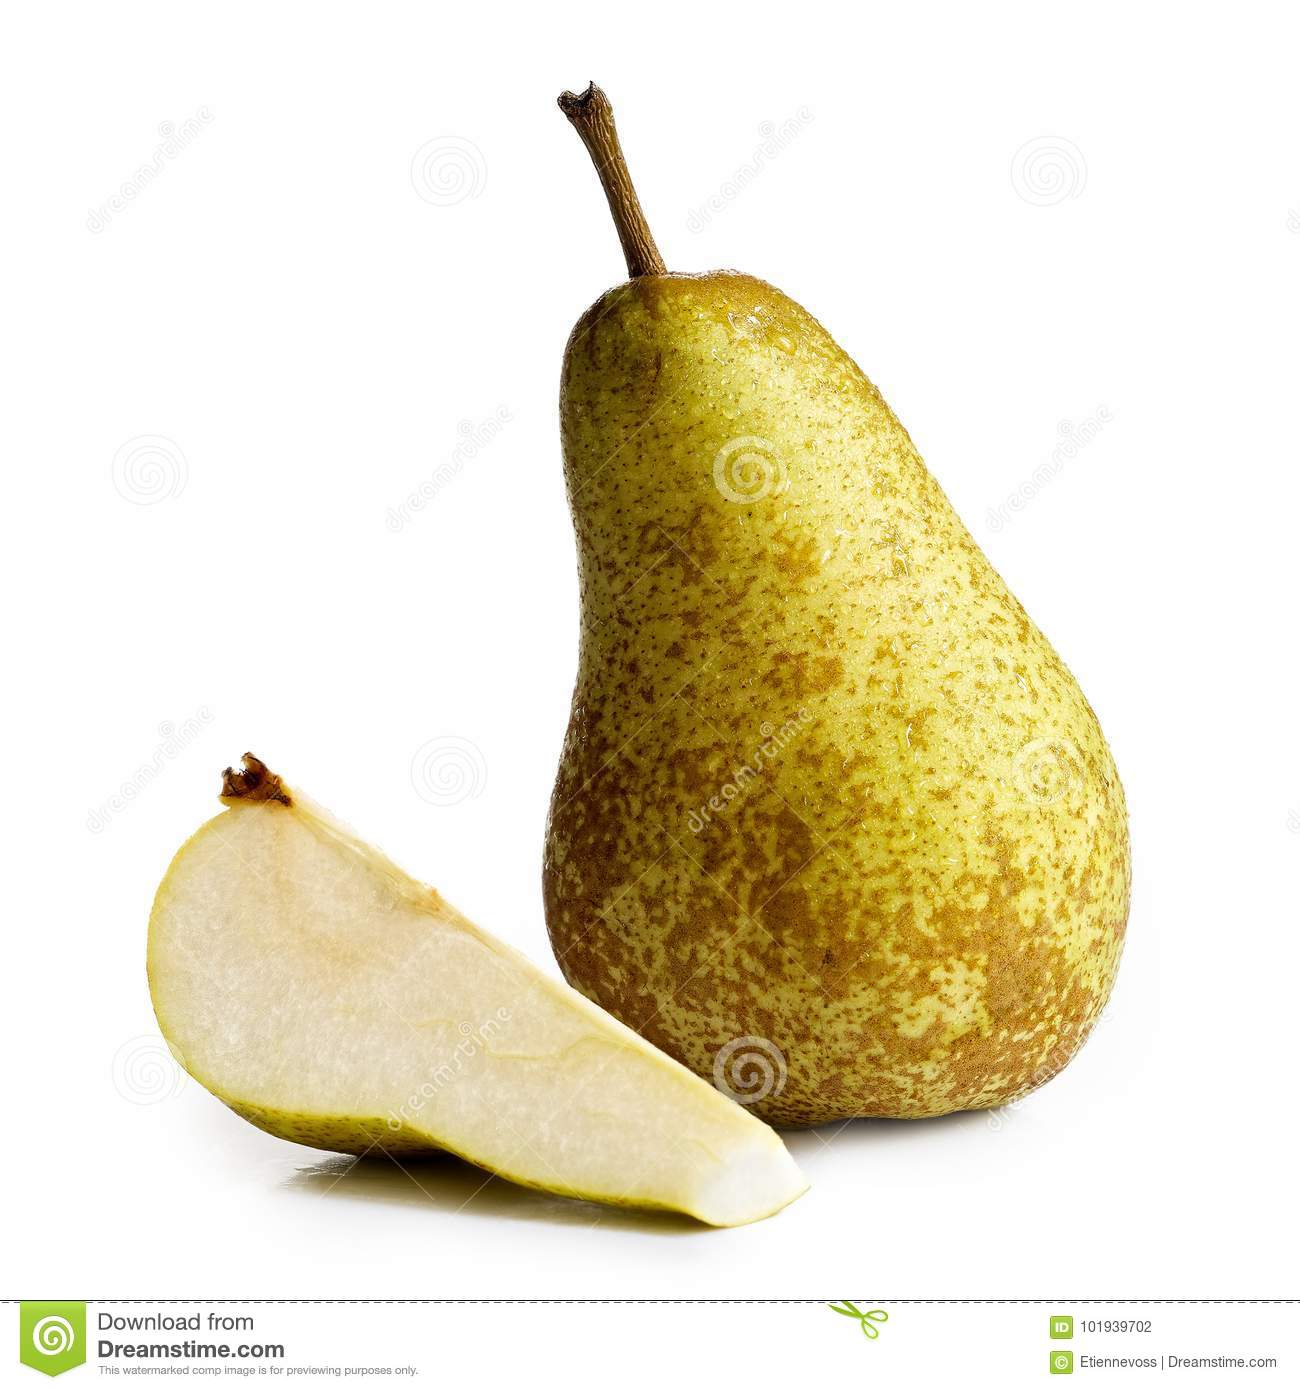 Single abate fetel pear next to a slice of pear isolated on whit